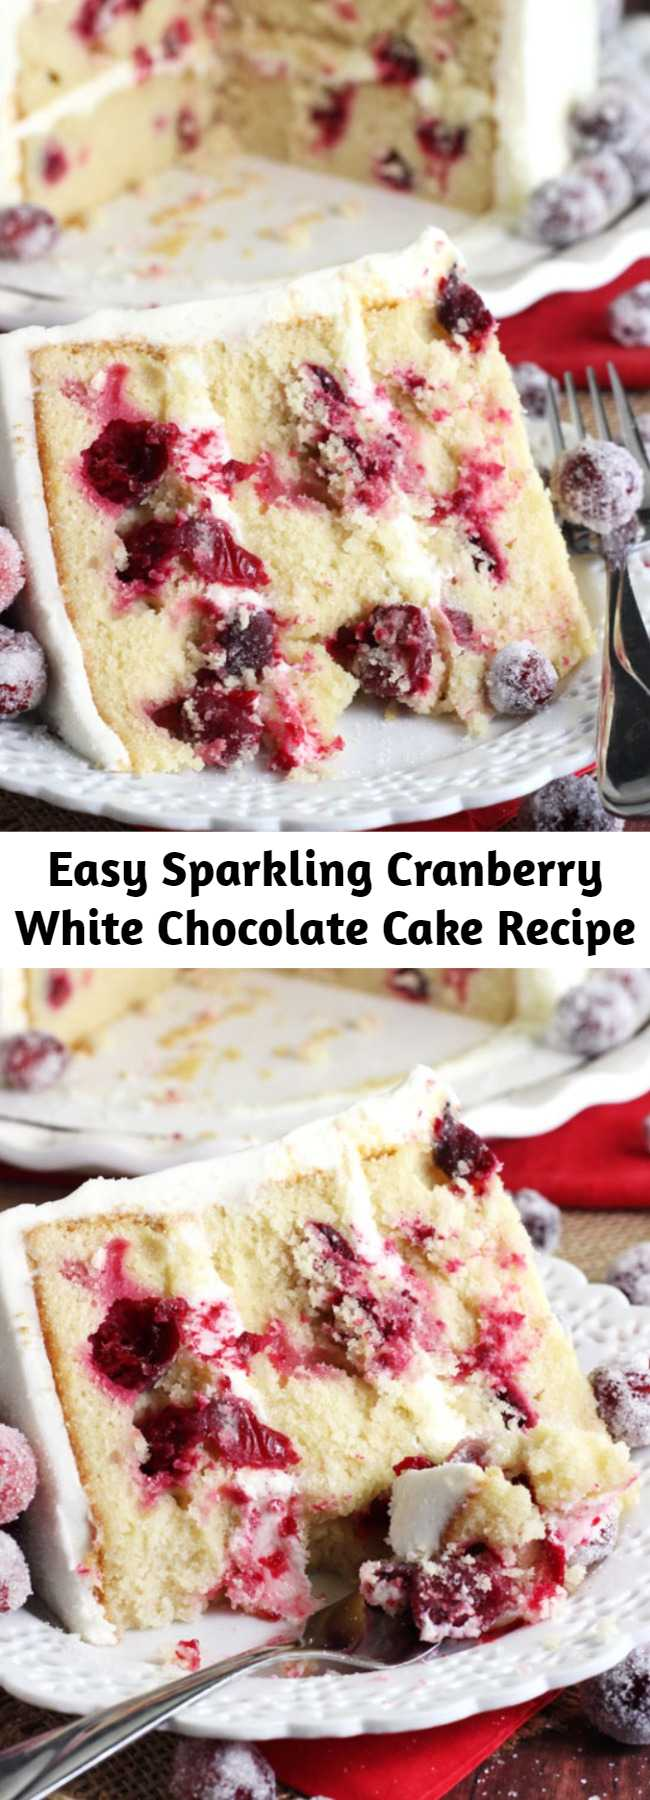 Easy Sparkling Cranberry White Chocolate Cake Recipe - This Sparkling Cranberry White Chocolate Cake recipe is no doubt a new favorite – especially for Christmas! The cake is incredibly moist and flavorful and the cranberries add the prefect burst of fruity flavor.